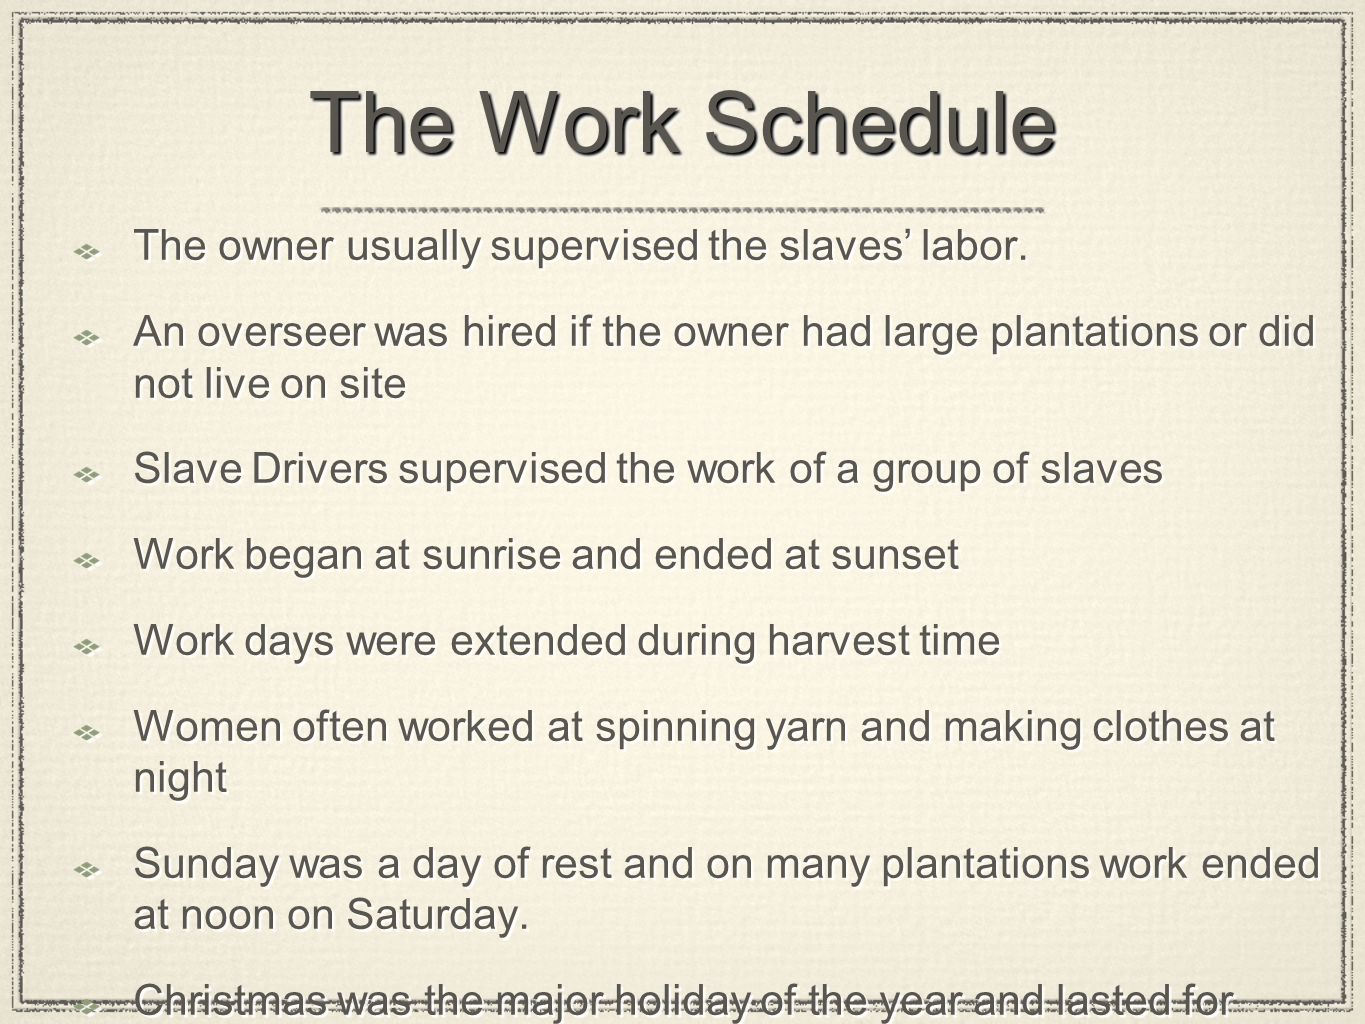 The Work Schedule The owner usually supervised the slaves' labor.